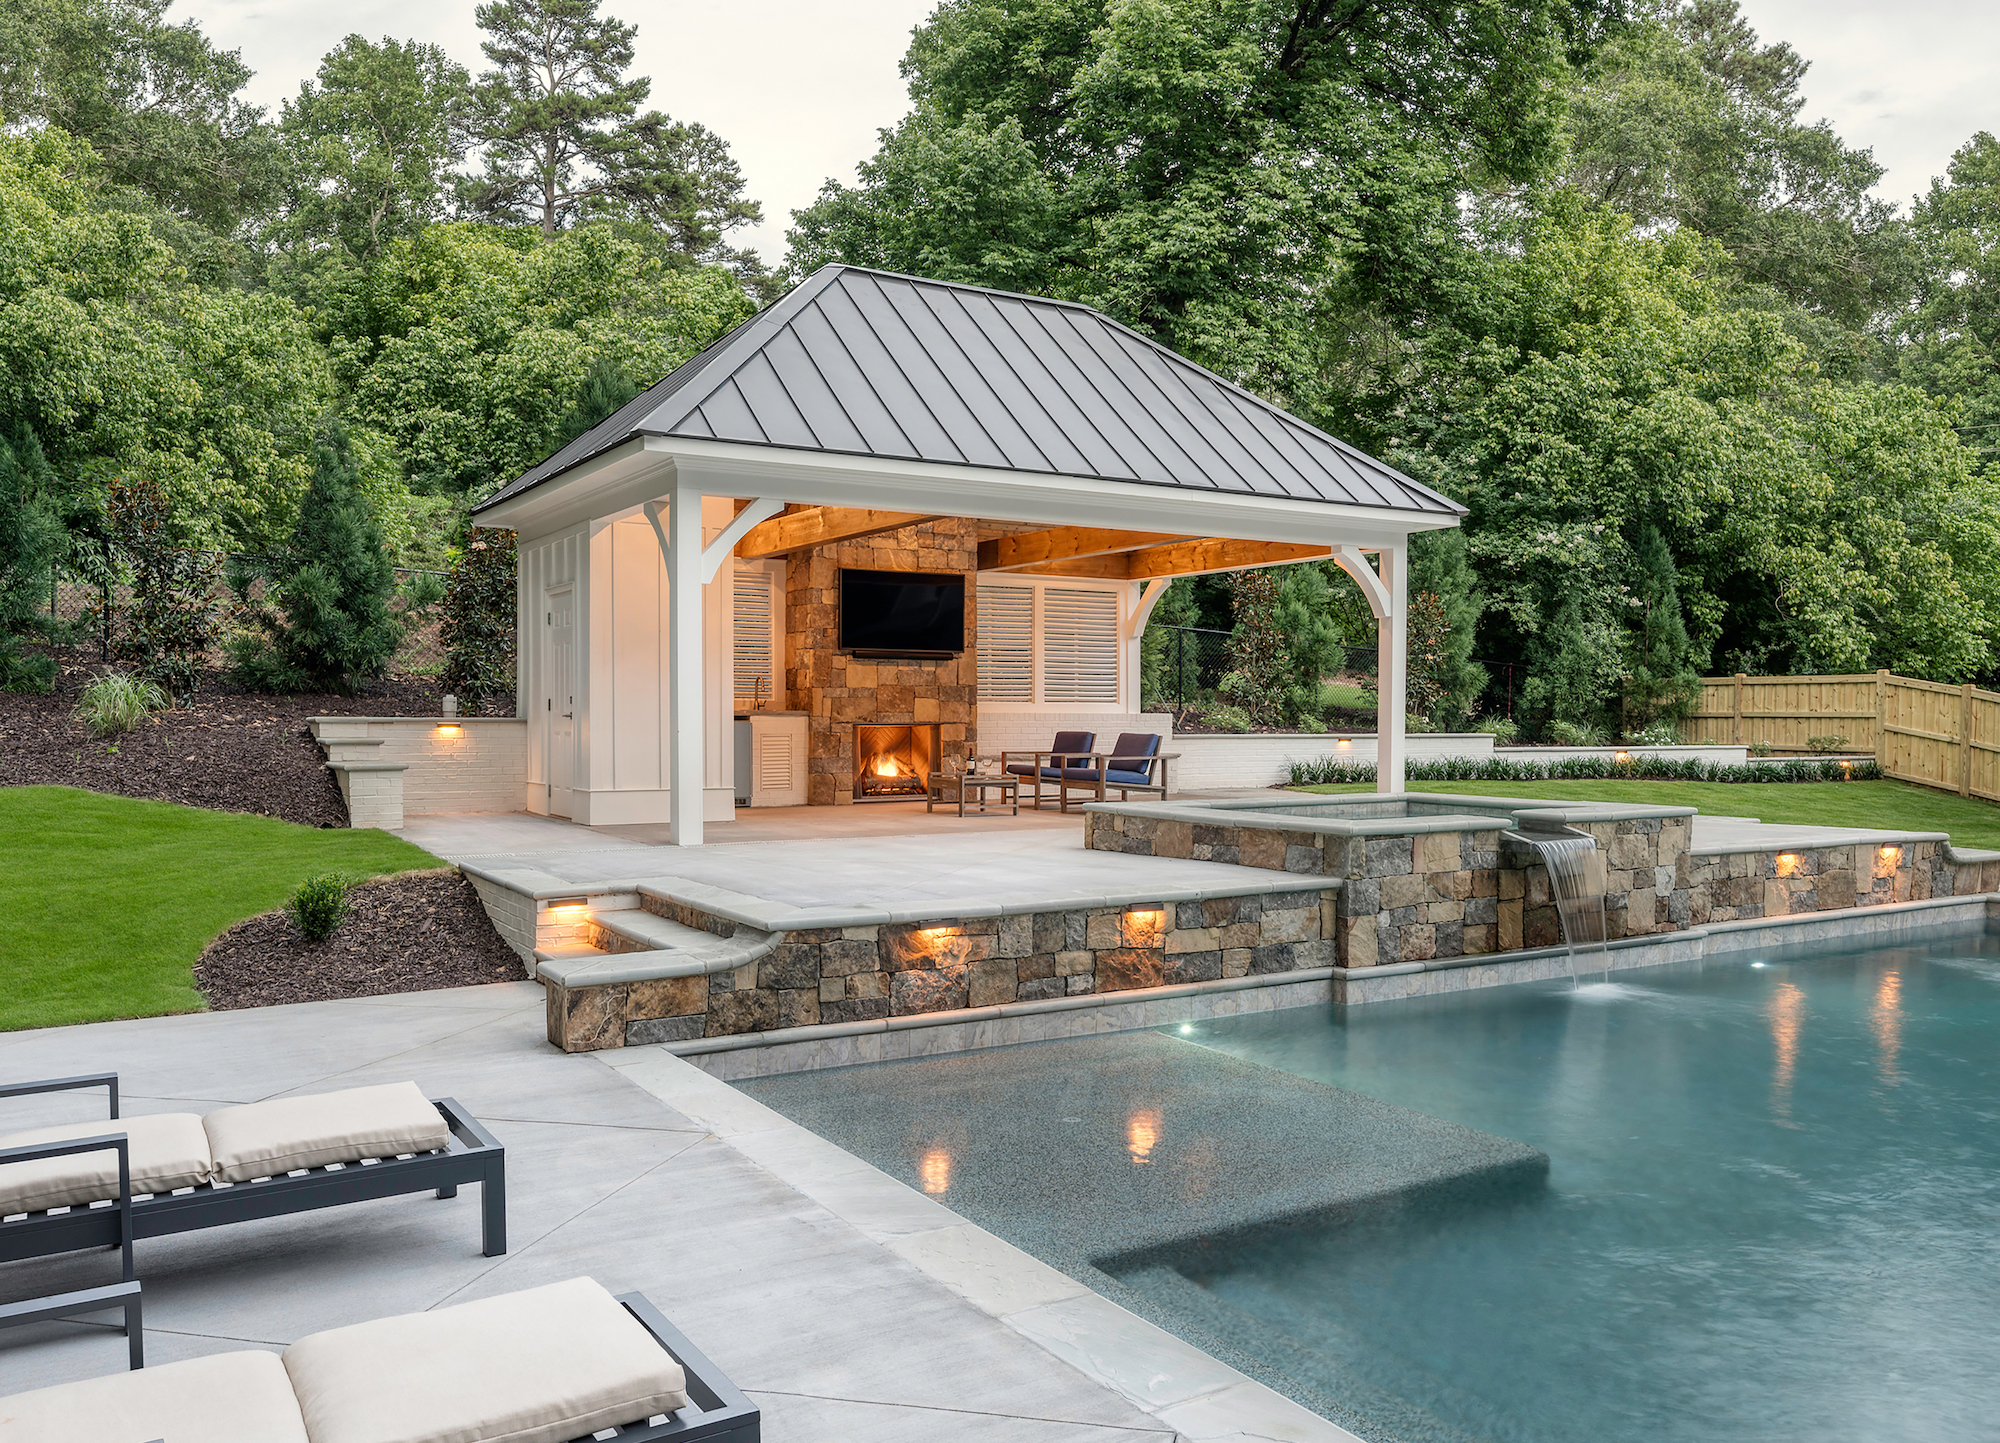 Side view of pool and cabana